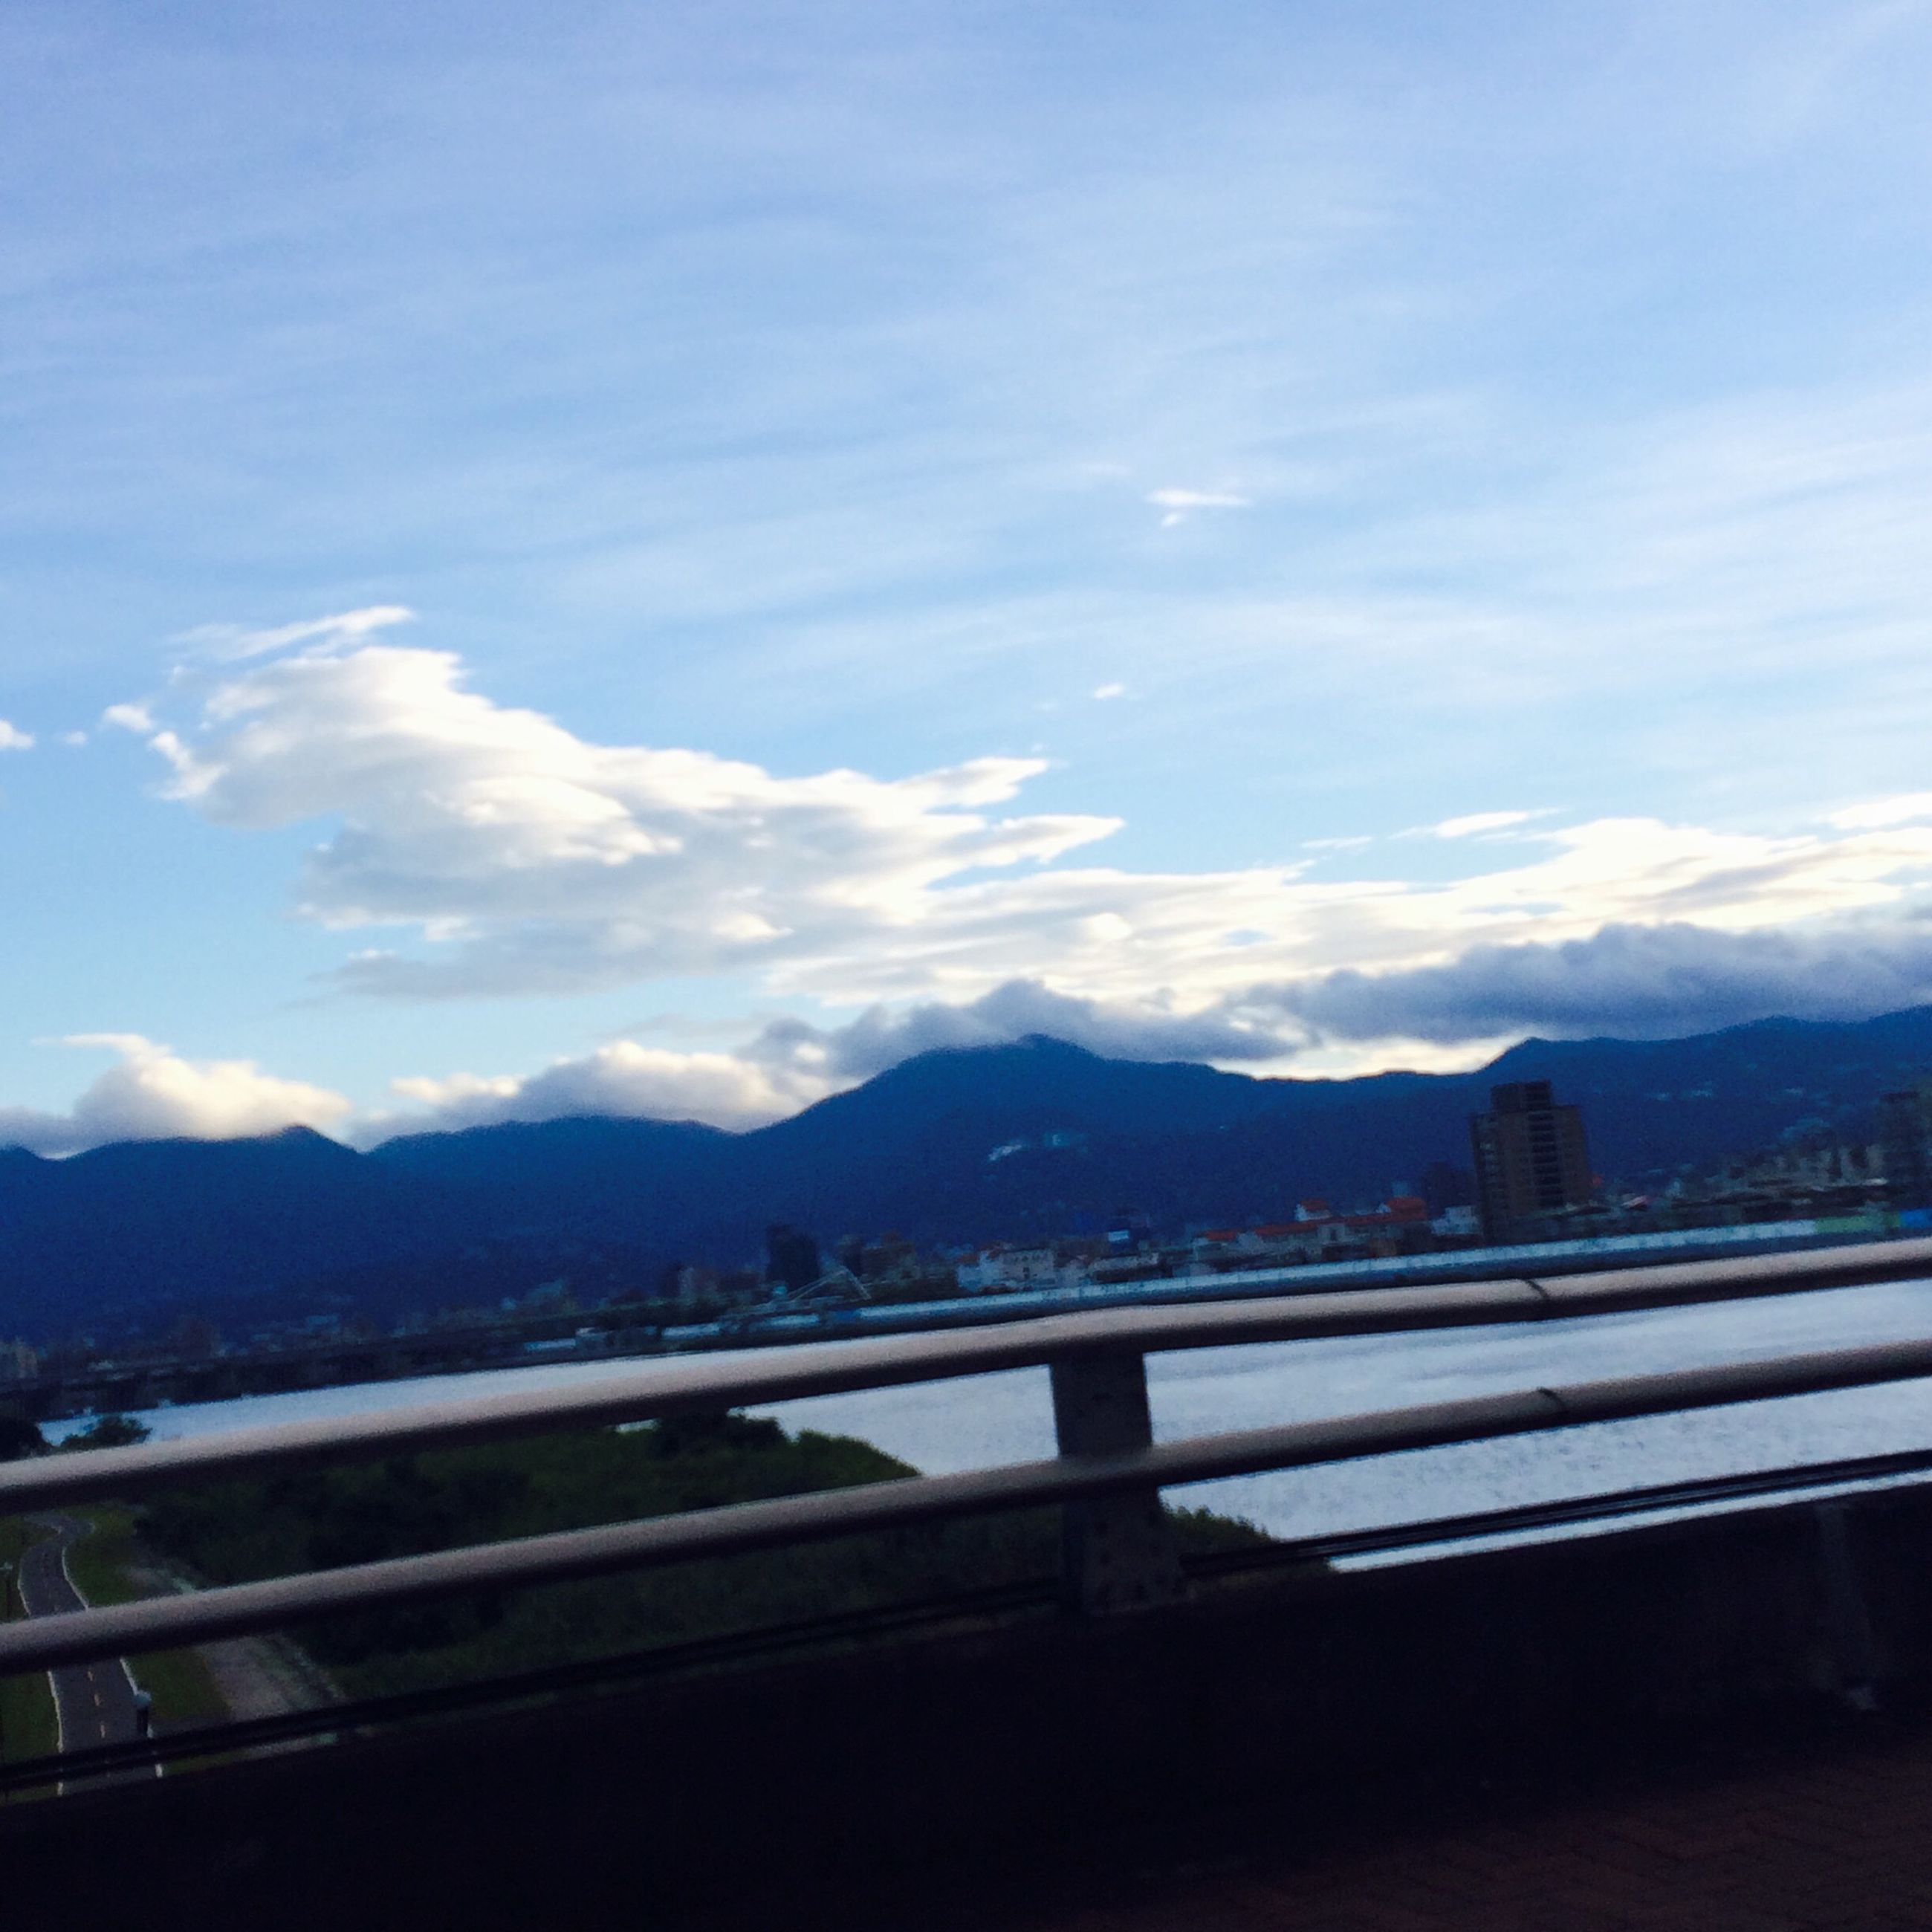 mountain, mountain range, sky, water, railing, cloud - sky, built structure, river, architecture, cloud, scenics, nature, building exterior, beauty in nature, tranquil scene, lake, transportation, city, tranquility, cloudy